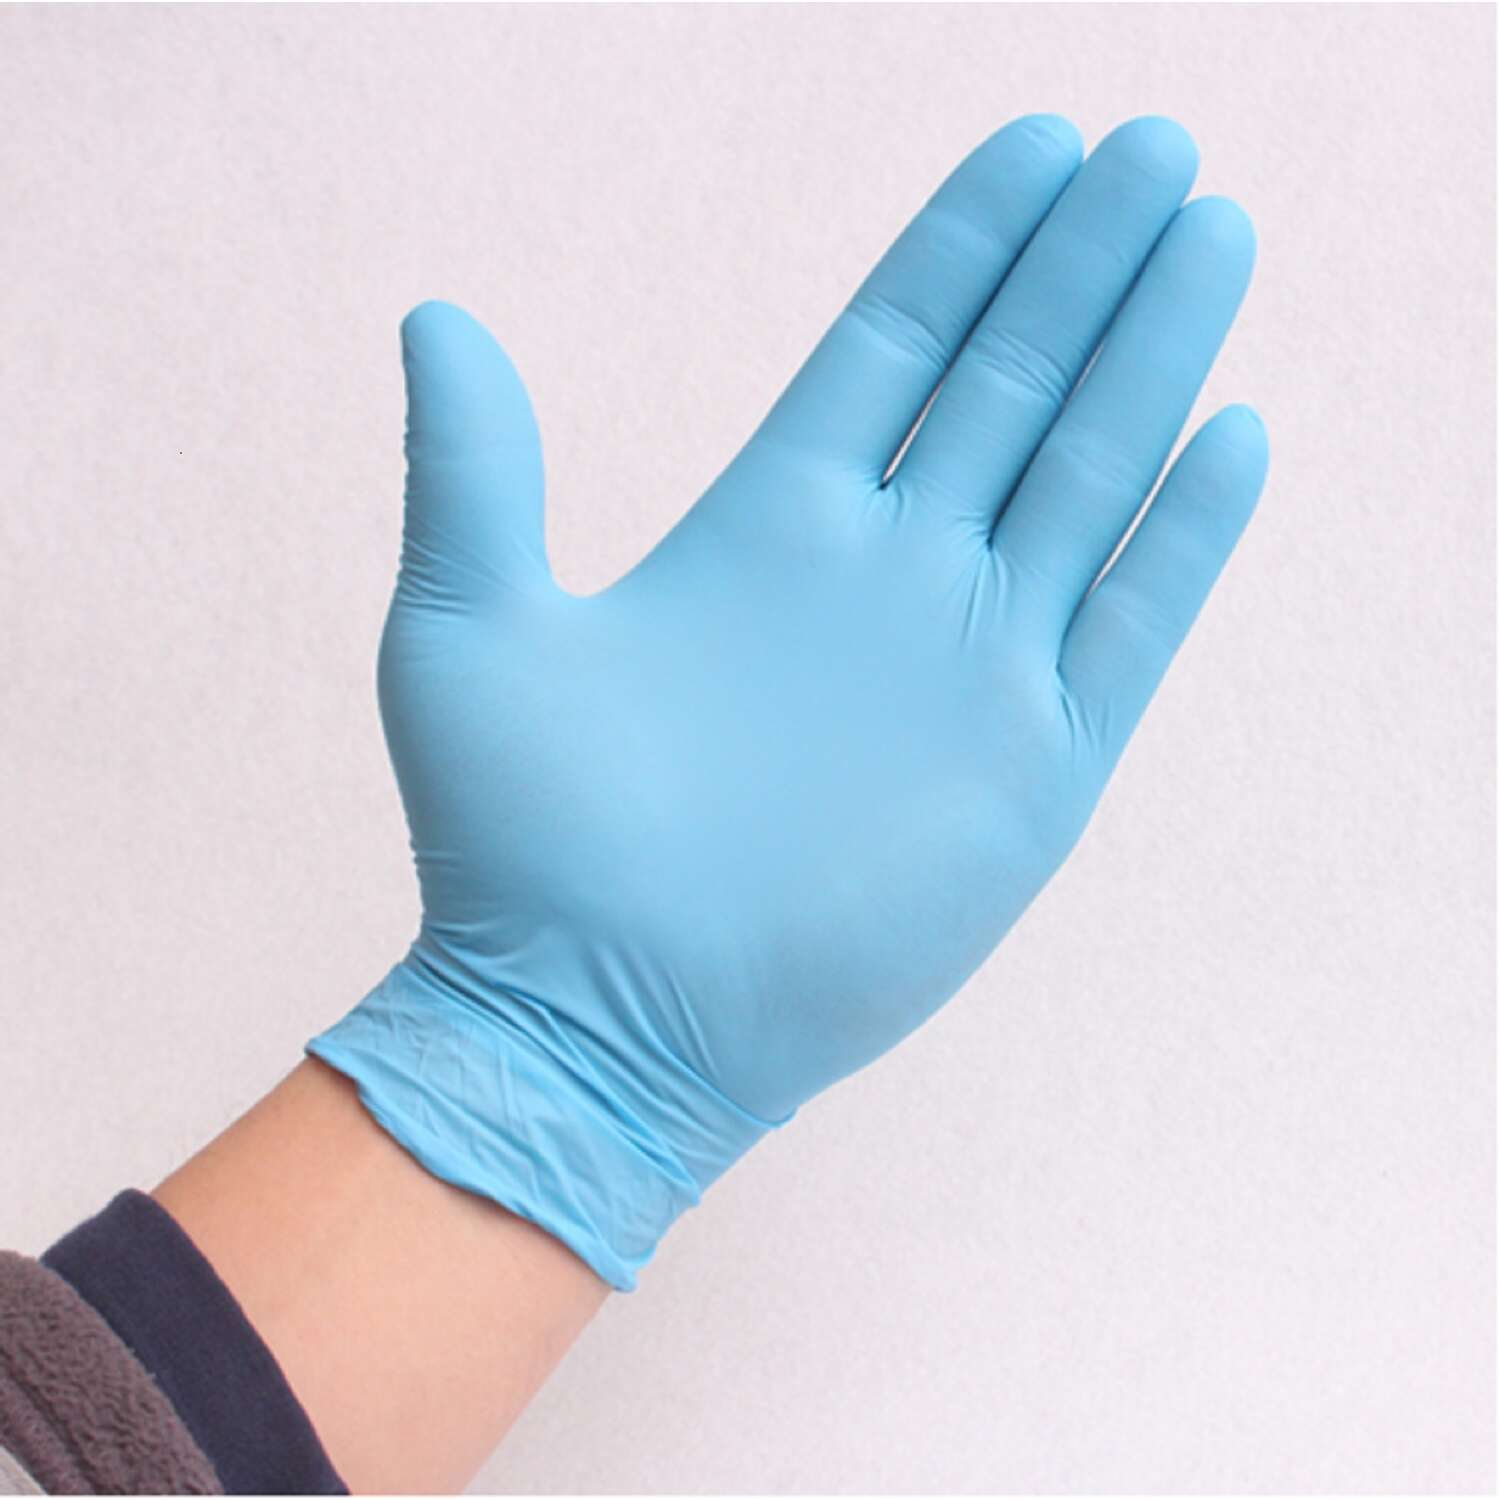 Tirol  Nitrile  Disposable Gloves  Medium  Blue  Powder Free  100 pk